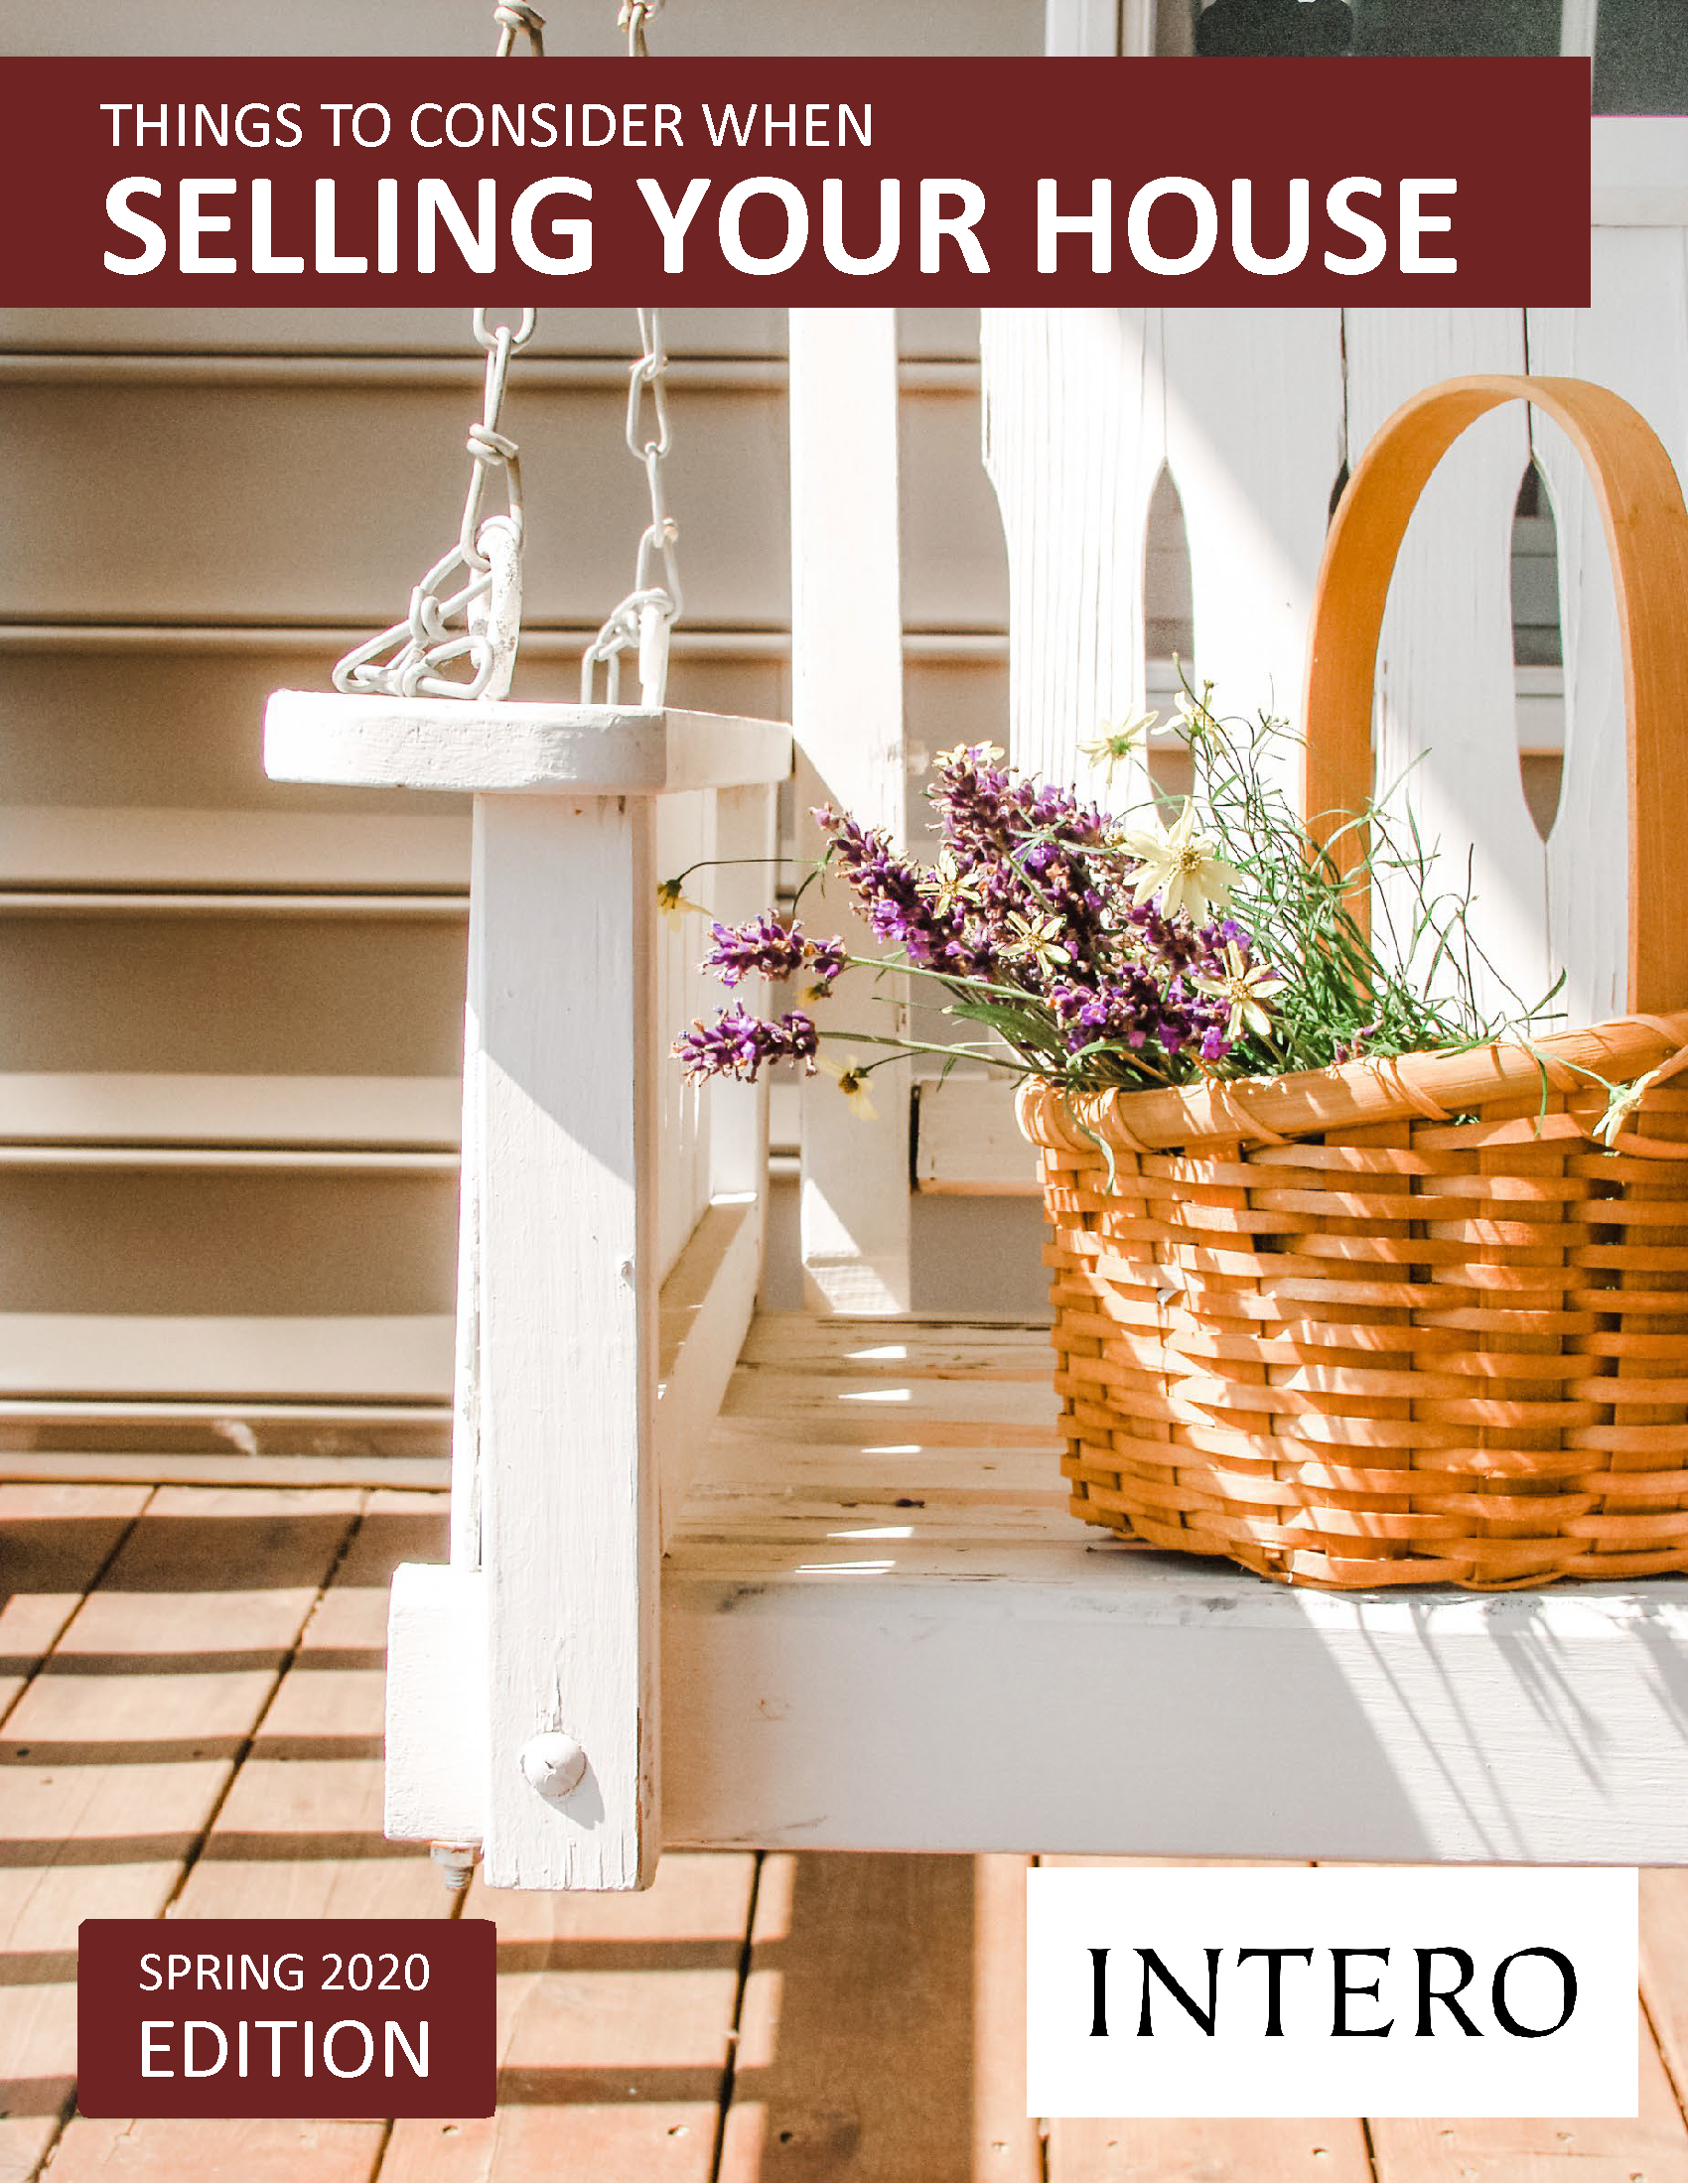 SellingYourHouseSpring2020 (1)_Page_01